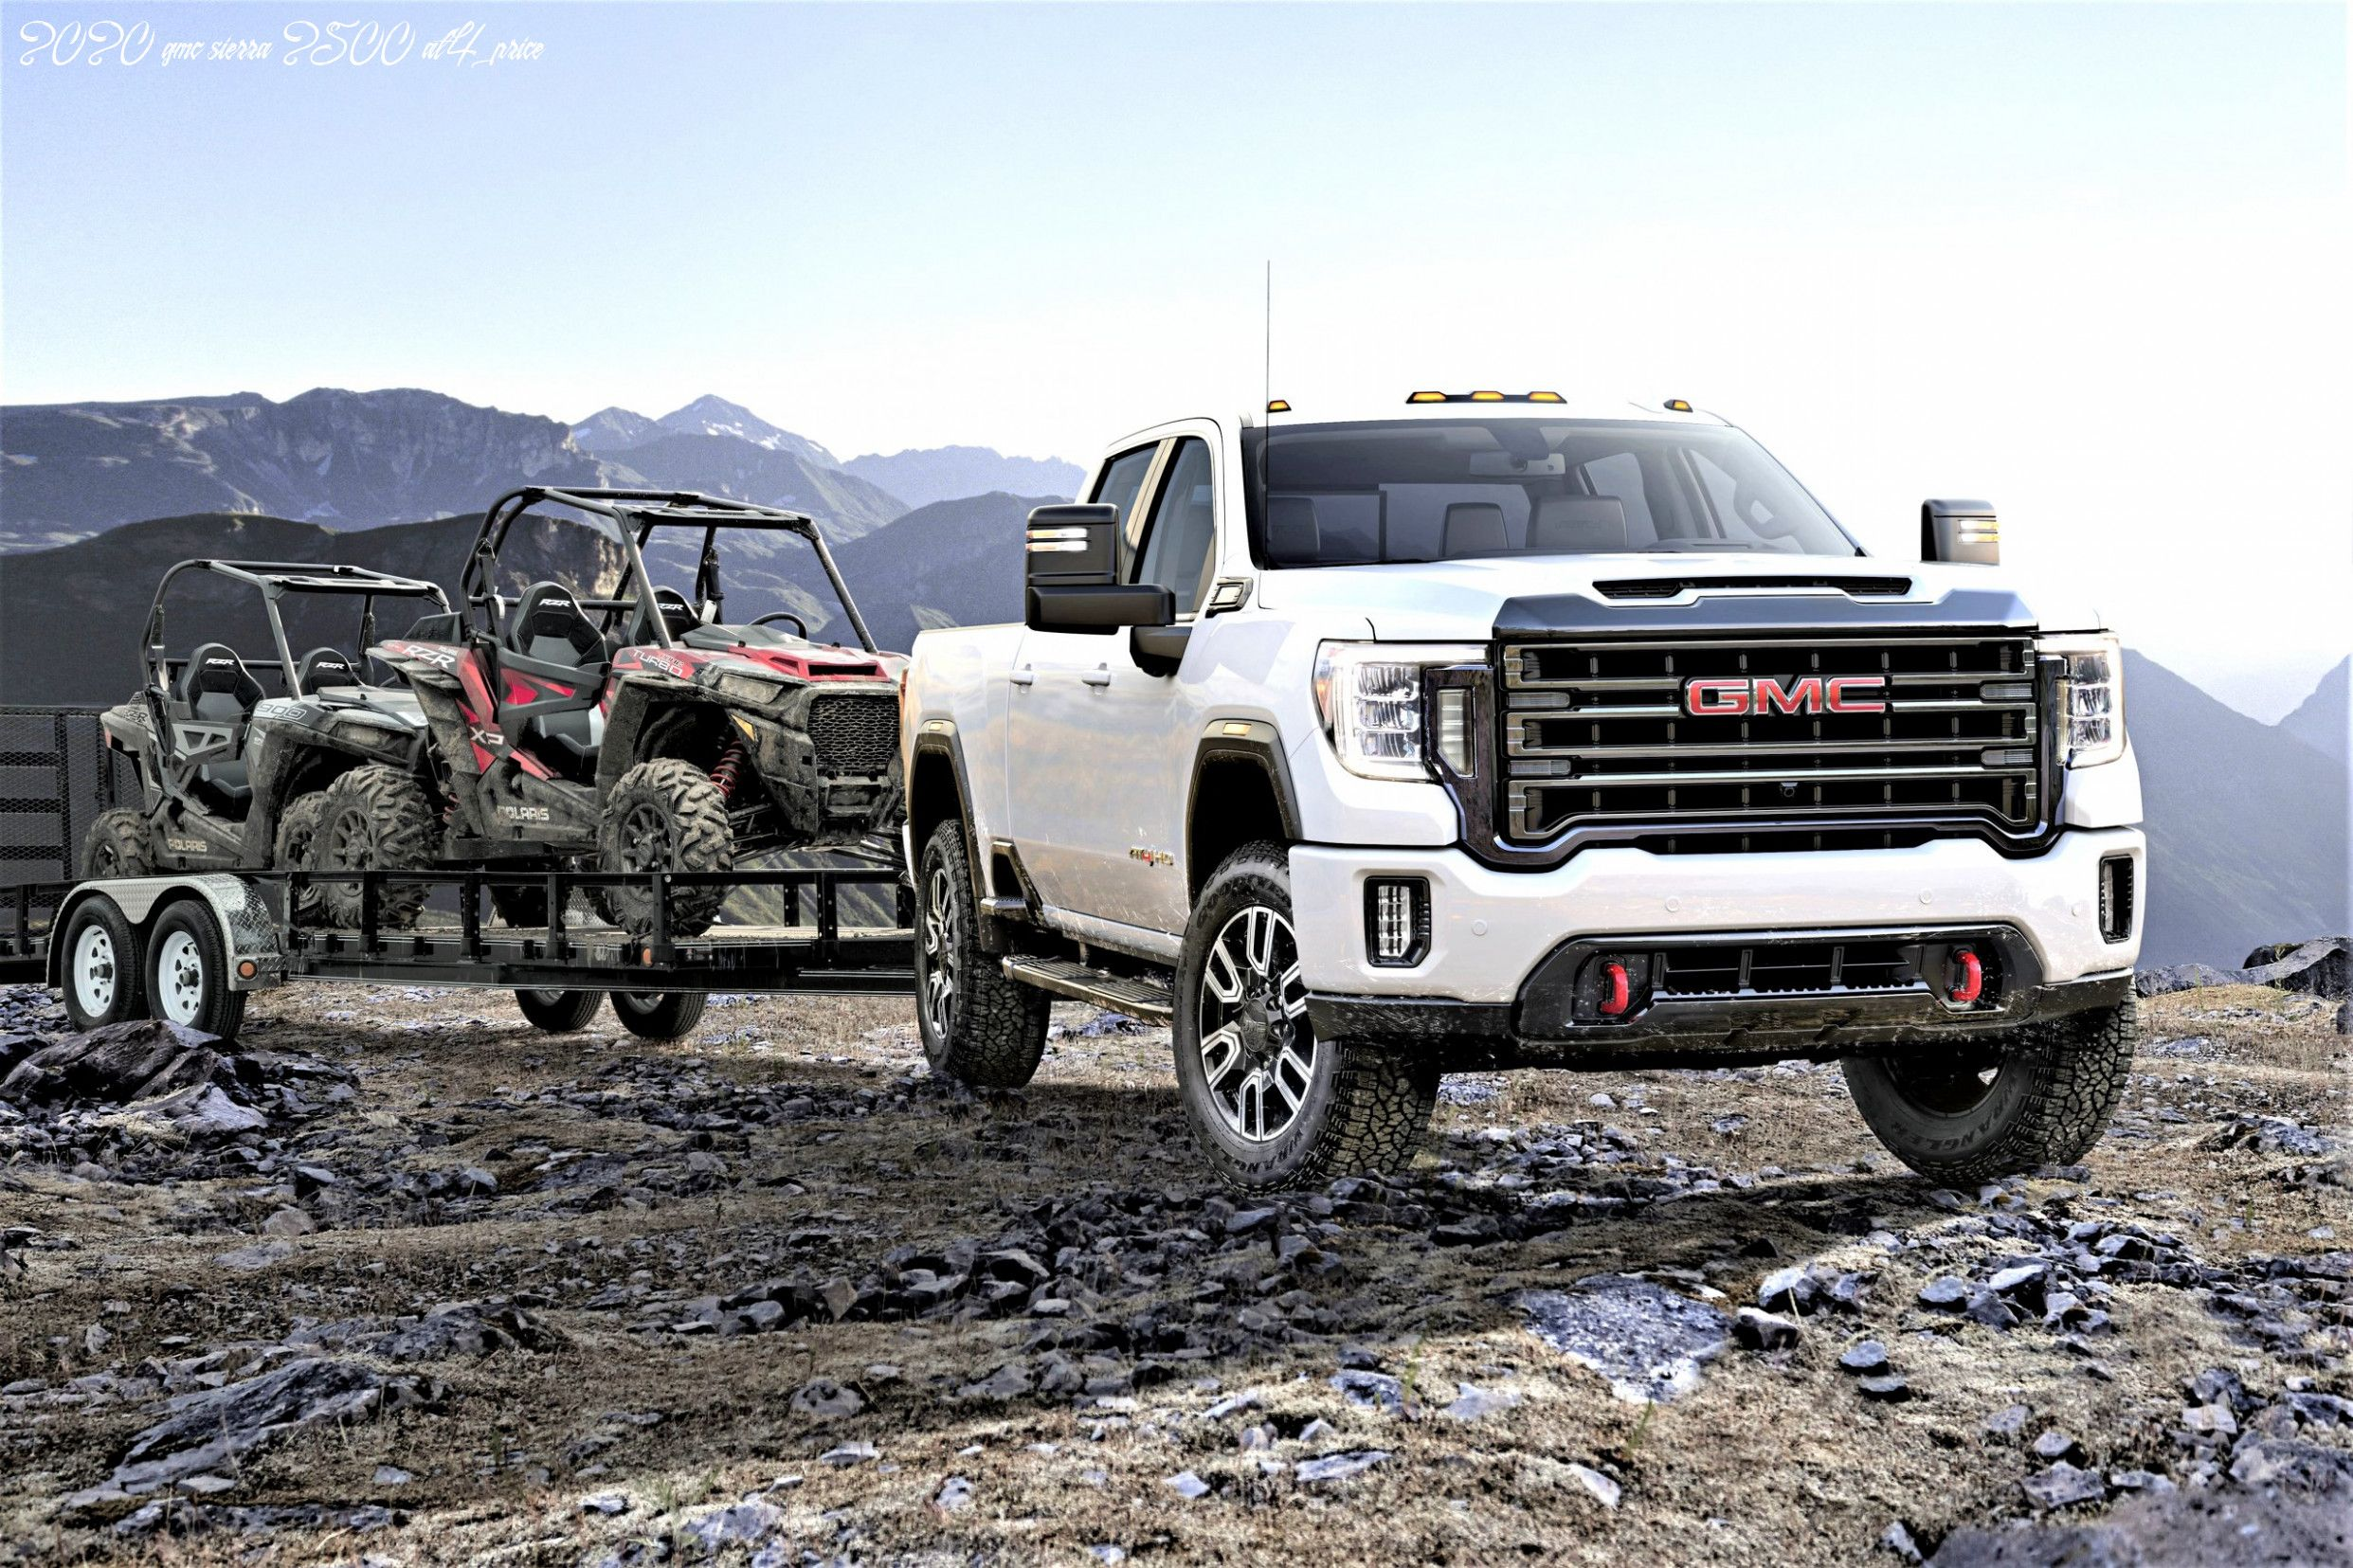 2020 Gmc Sierra 2500hd Leak Price In 2020 With Images Diesel Trucks